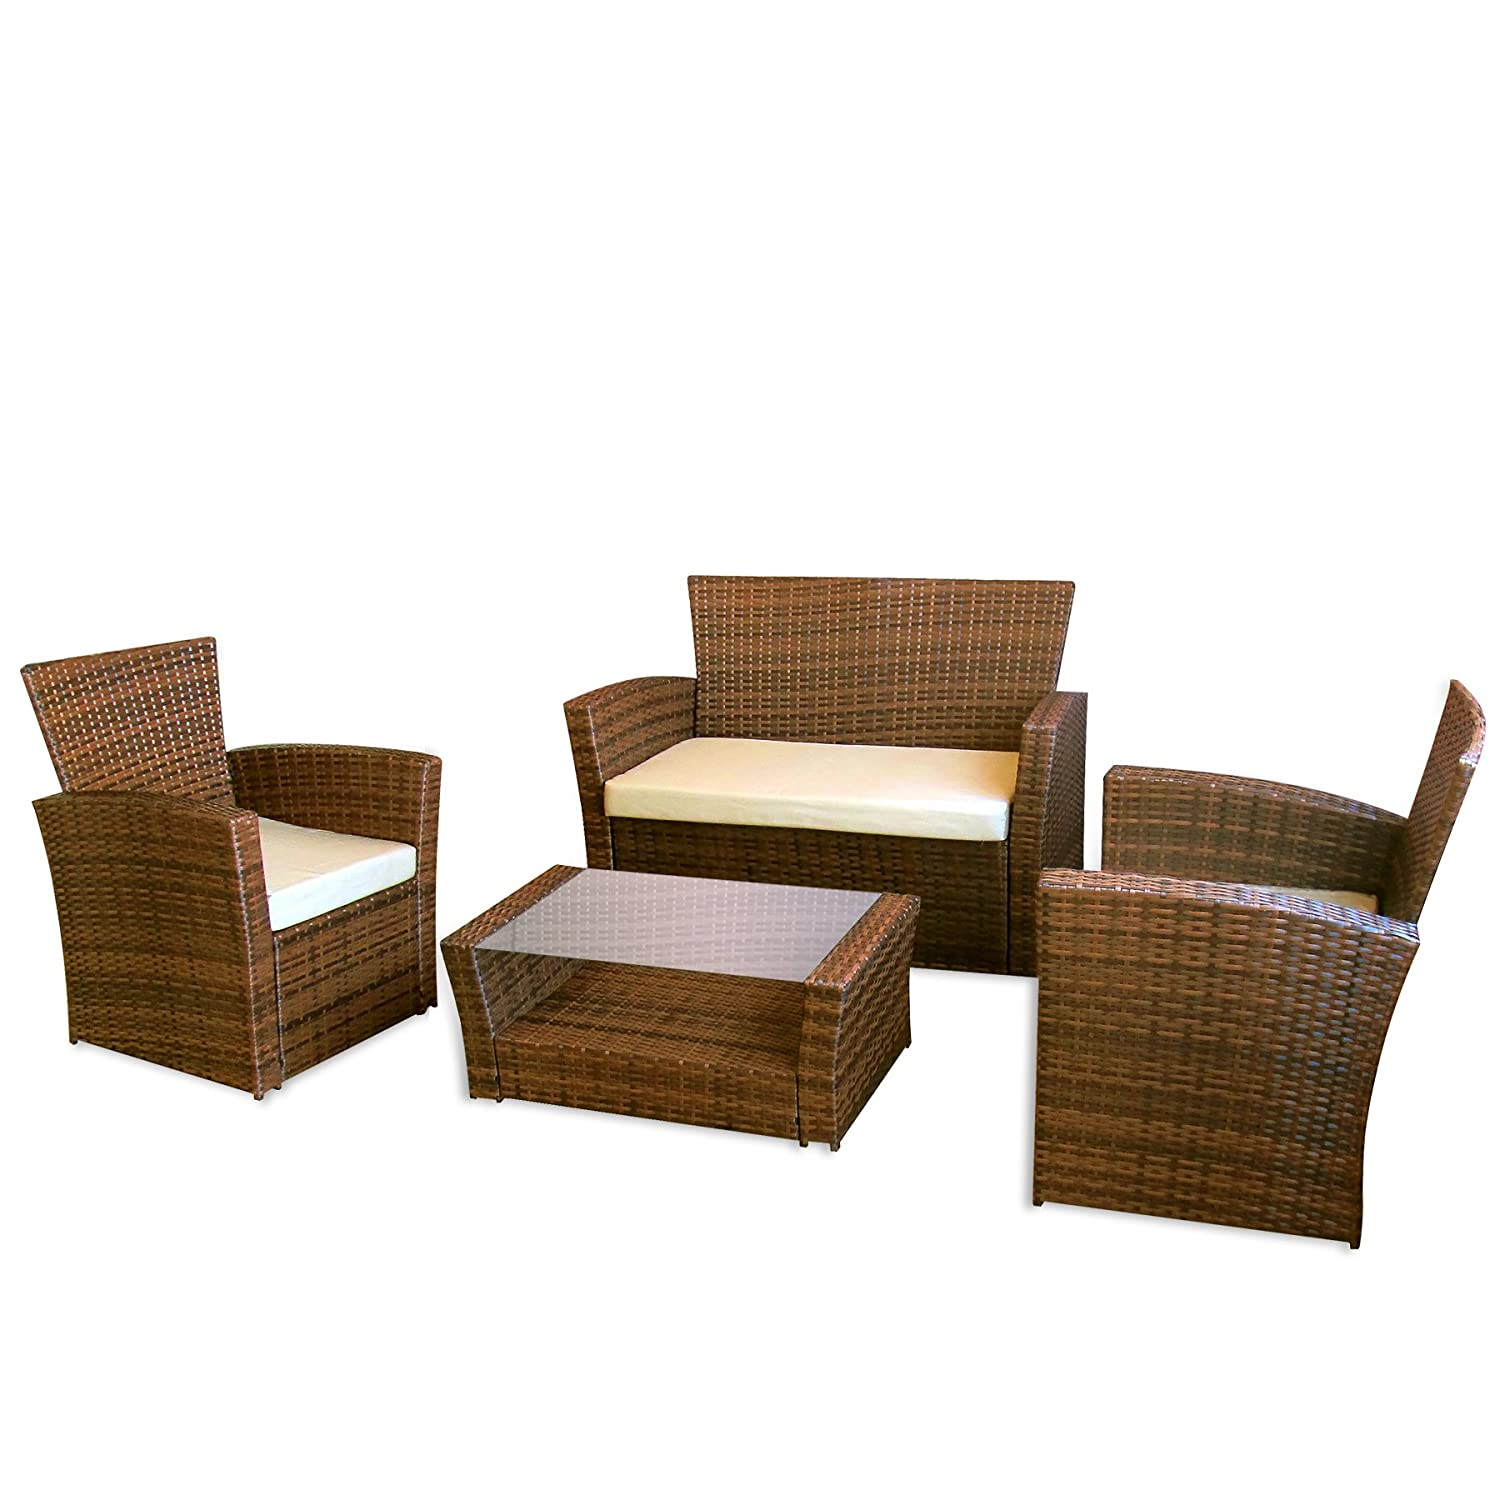 gartenm bel le havre in braun ii garten lounge von jet line moebel rattan polyrattan. Black Bedroom Furniture Sets. Home Design Ideas